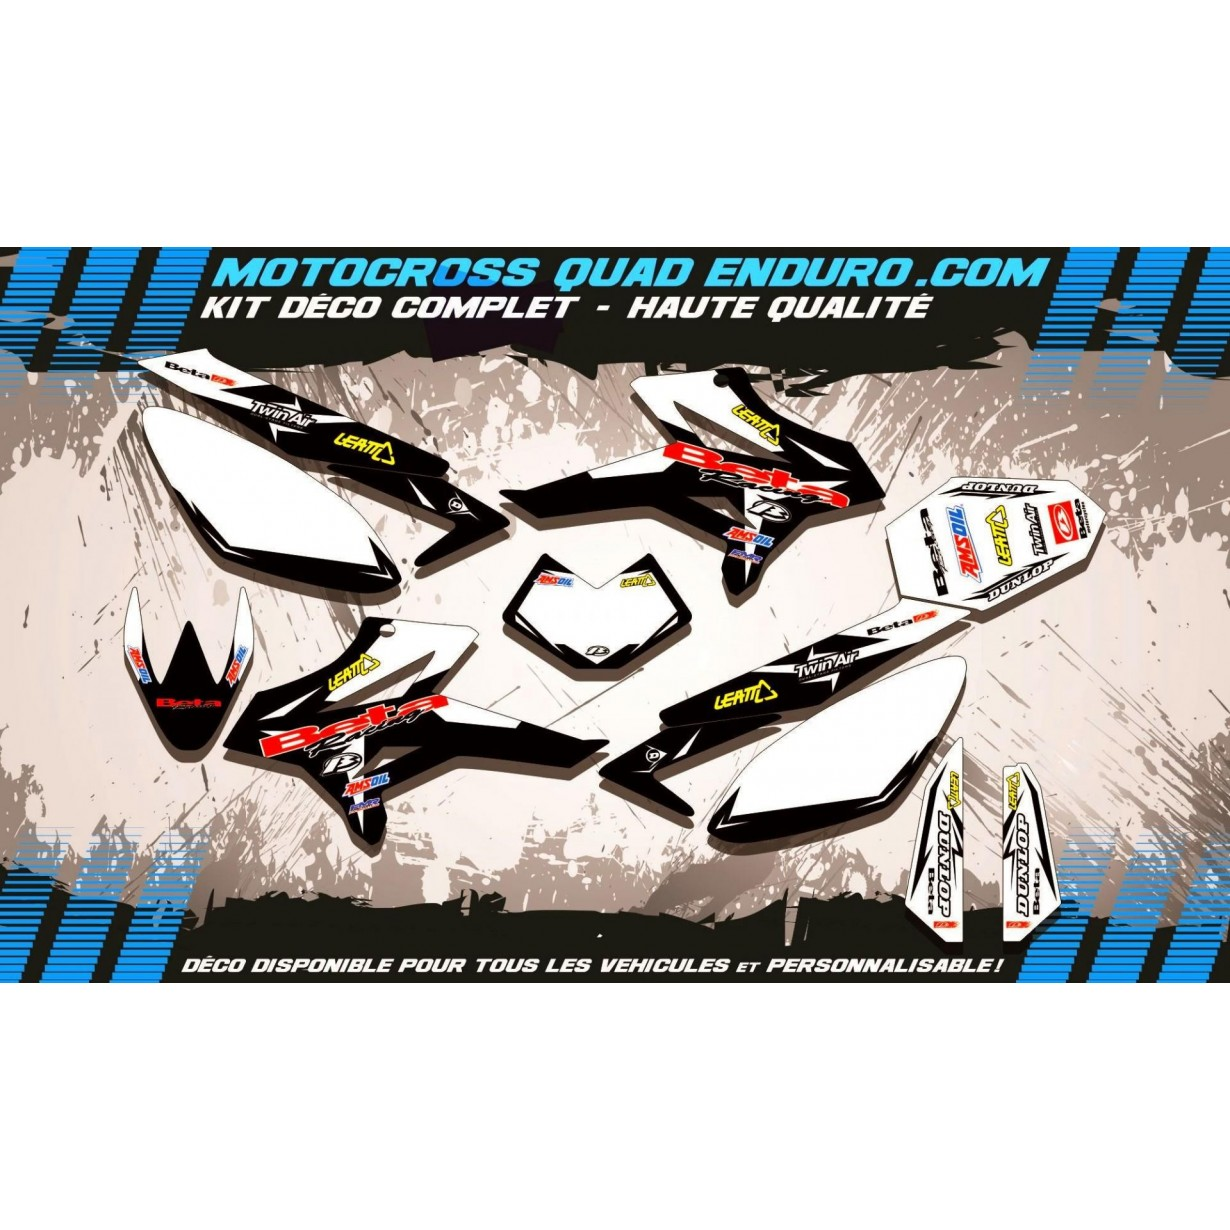 KIT DÉCO Perso 50 RR enduro 11-17 Factory Black Edition MA10GB